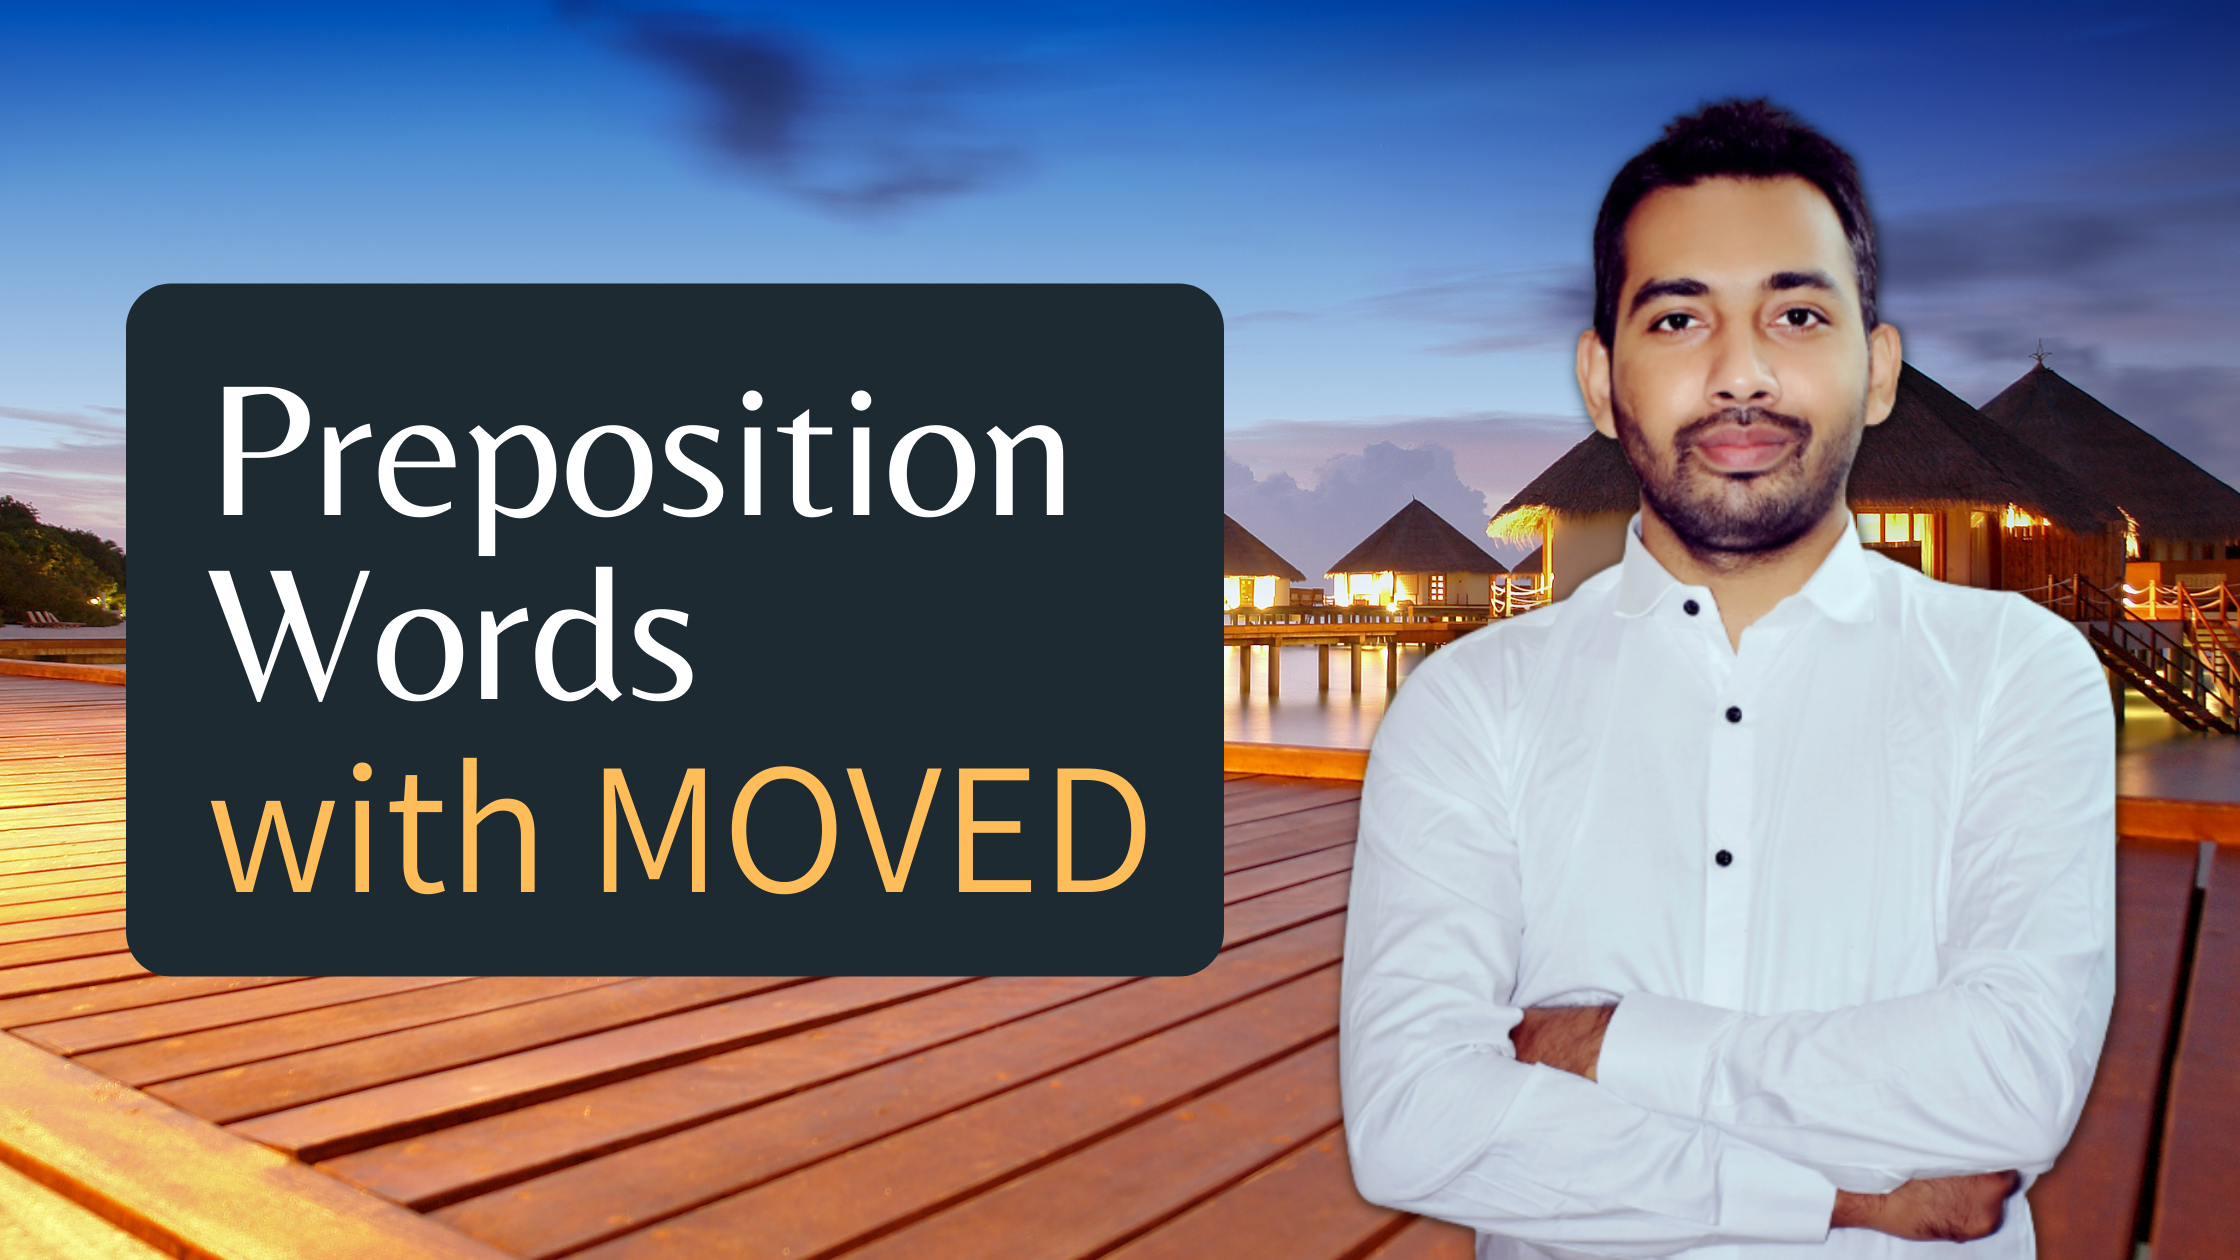 Preposition Words with Moved